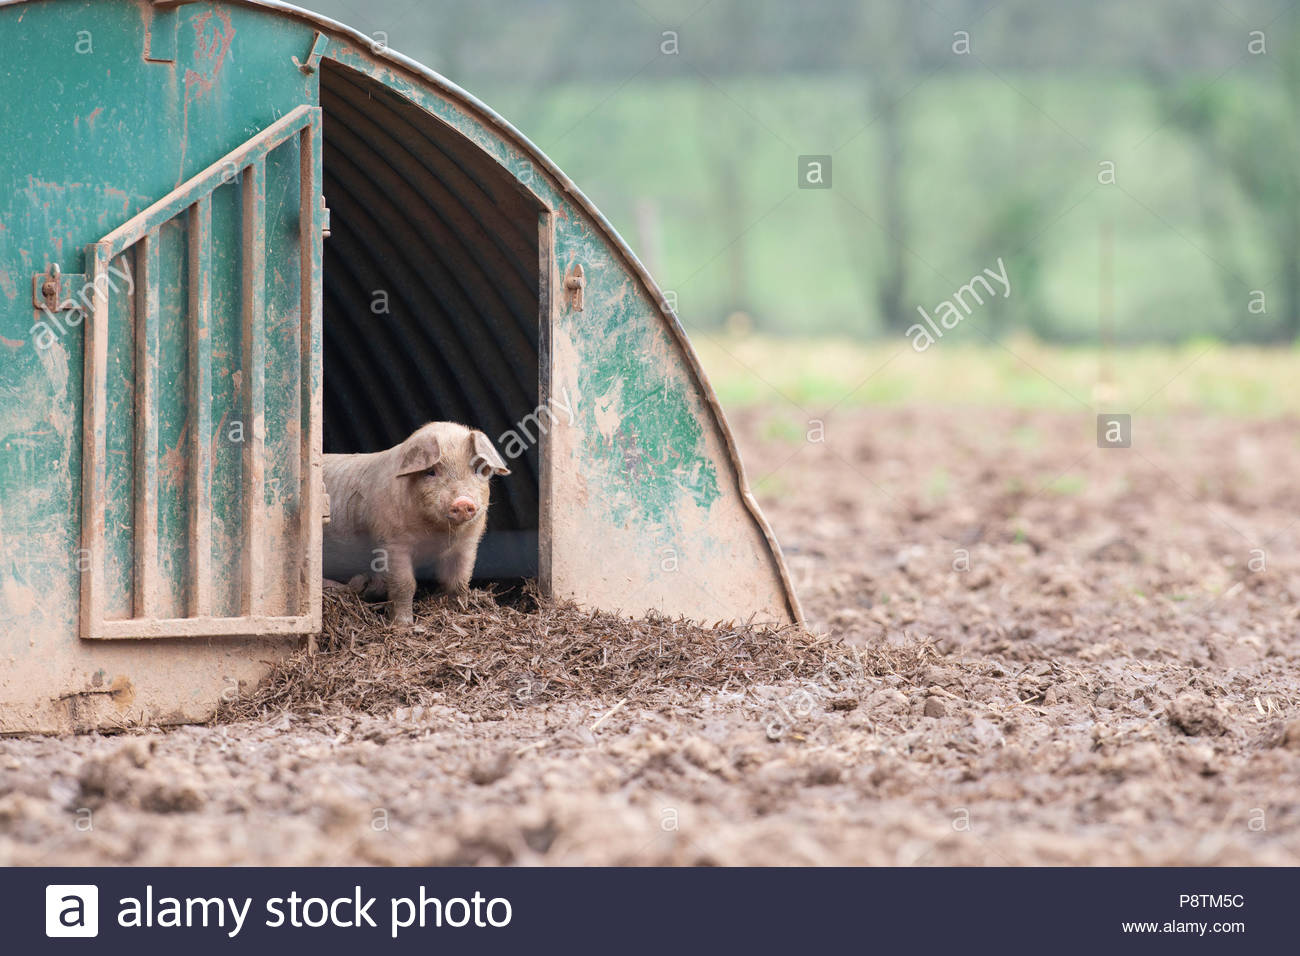 Piglet Standing in a Shelter in a Field in Devon - Stock Image